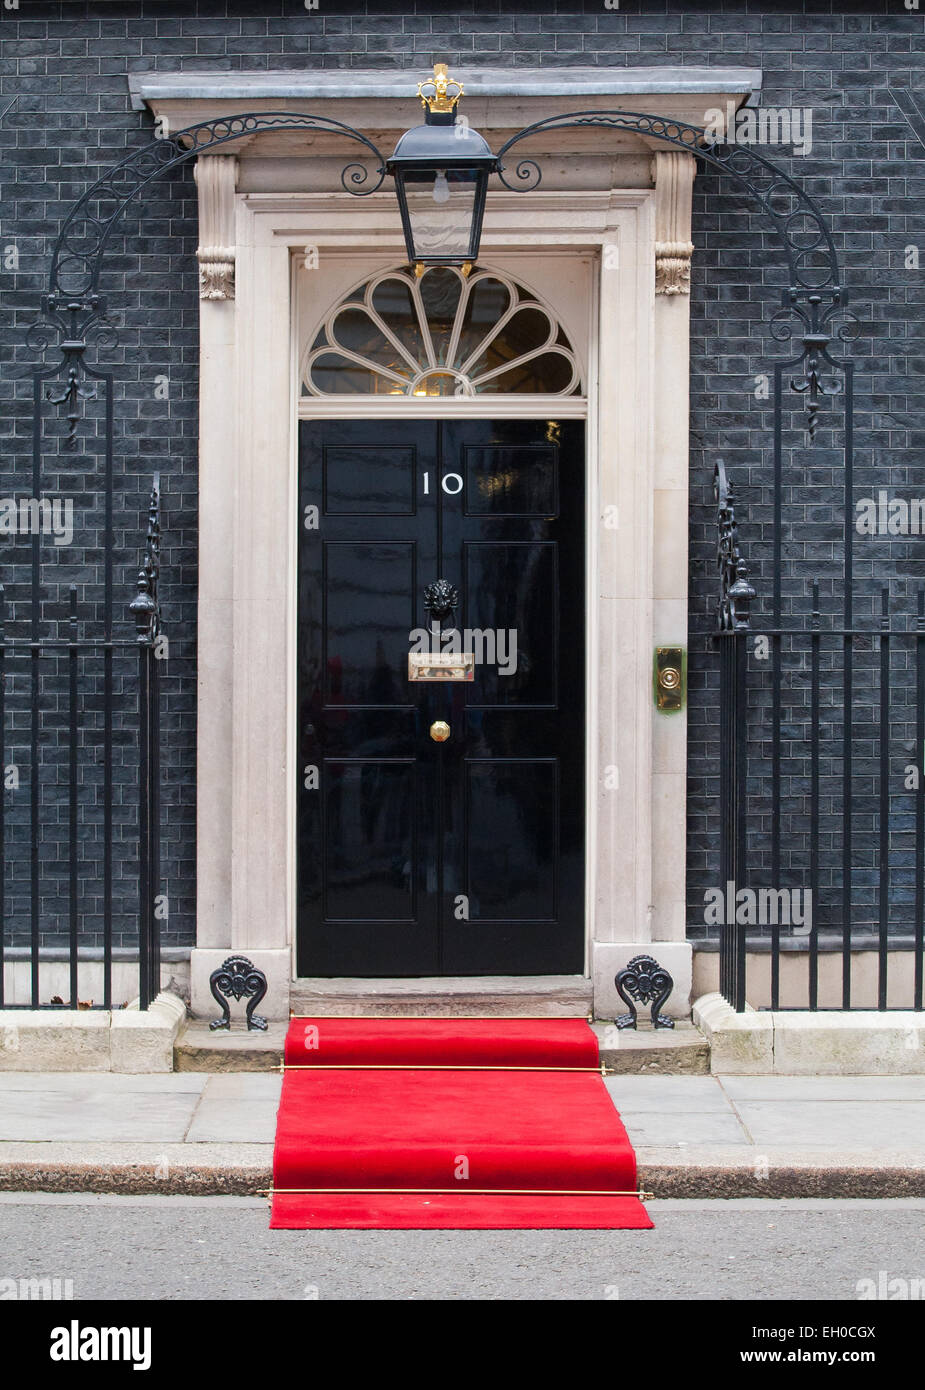 The front door of 10 Downing street with the red carpet laid out awaiting a VIP & The front door of 10 Downing street with the red carpet laid out ...